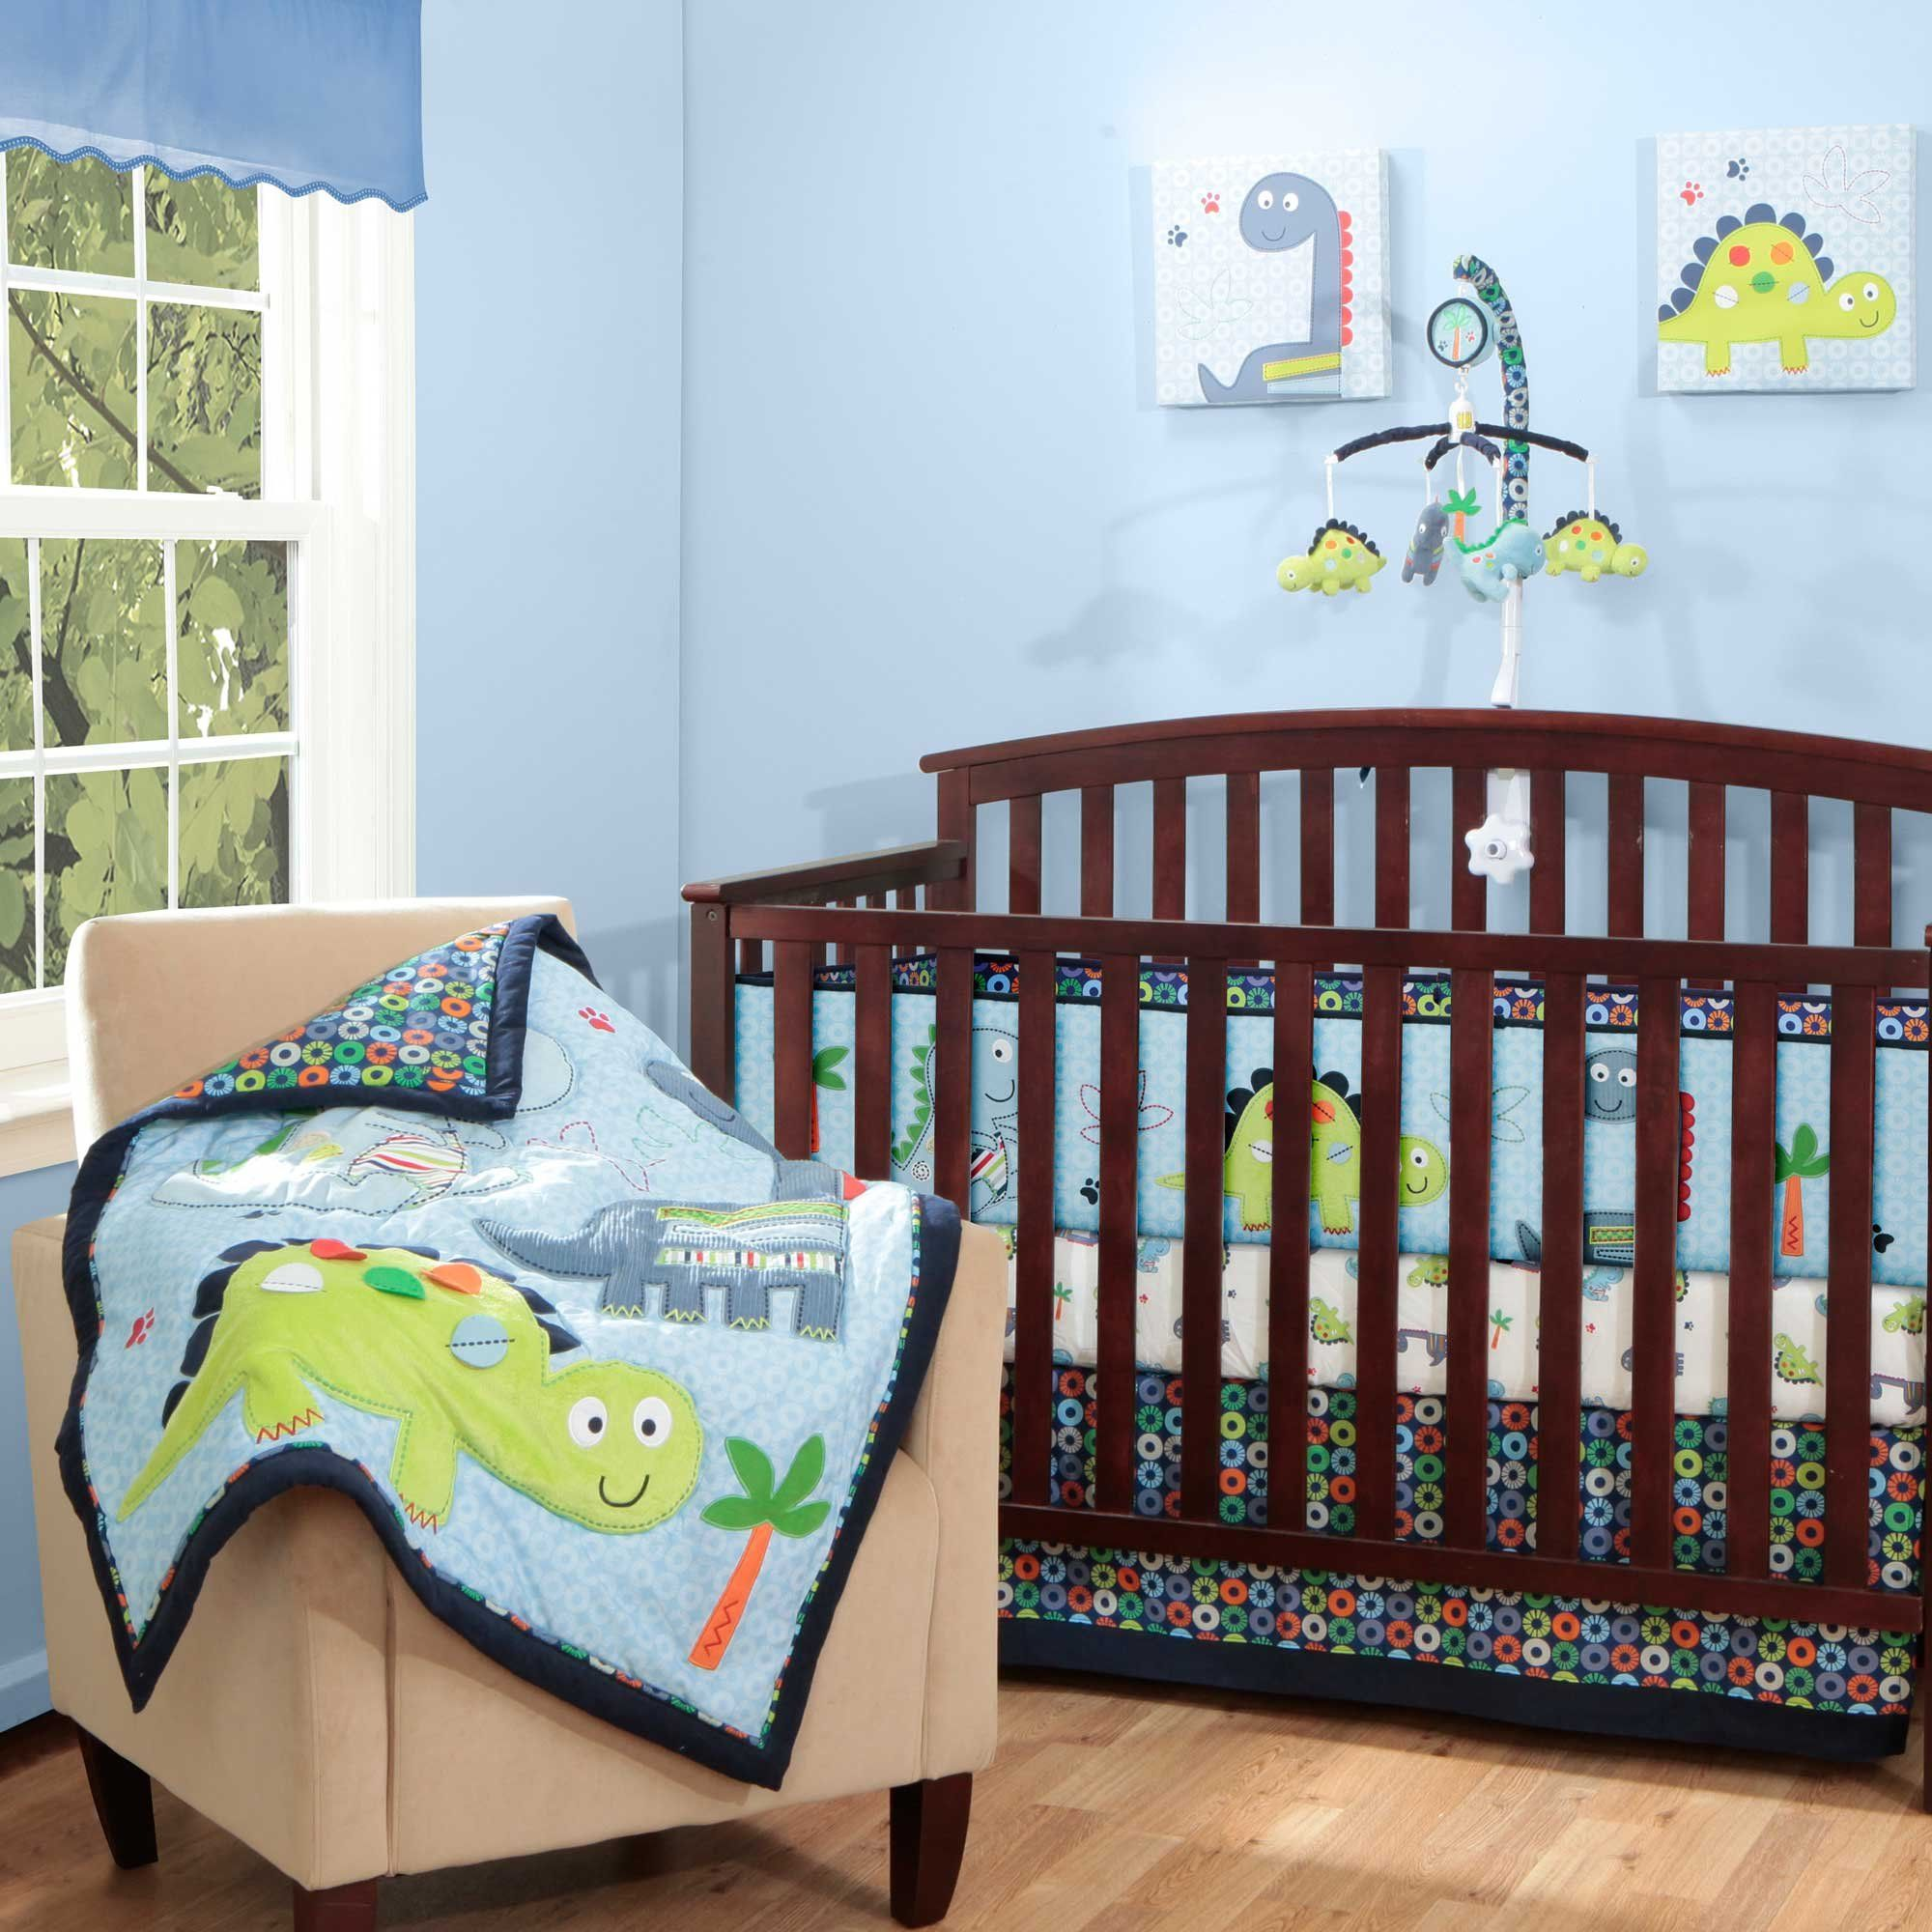 Boy So Cute Amazon Com Little Dino 4 Piece Baby Crib Bedding Set With Bumper By Bananafish Baby Crib Bedding Boy Baby Boy Cribs Baby Crib Bedding